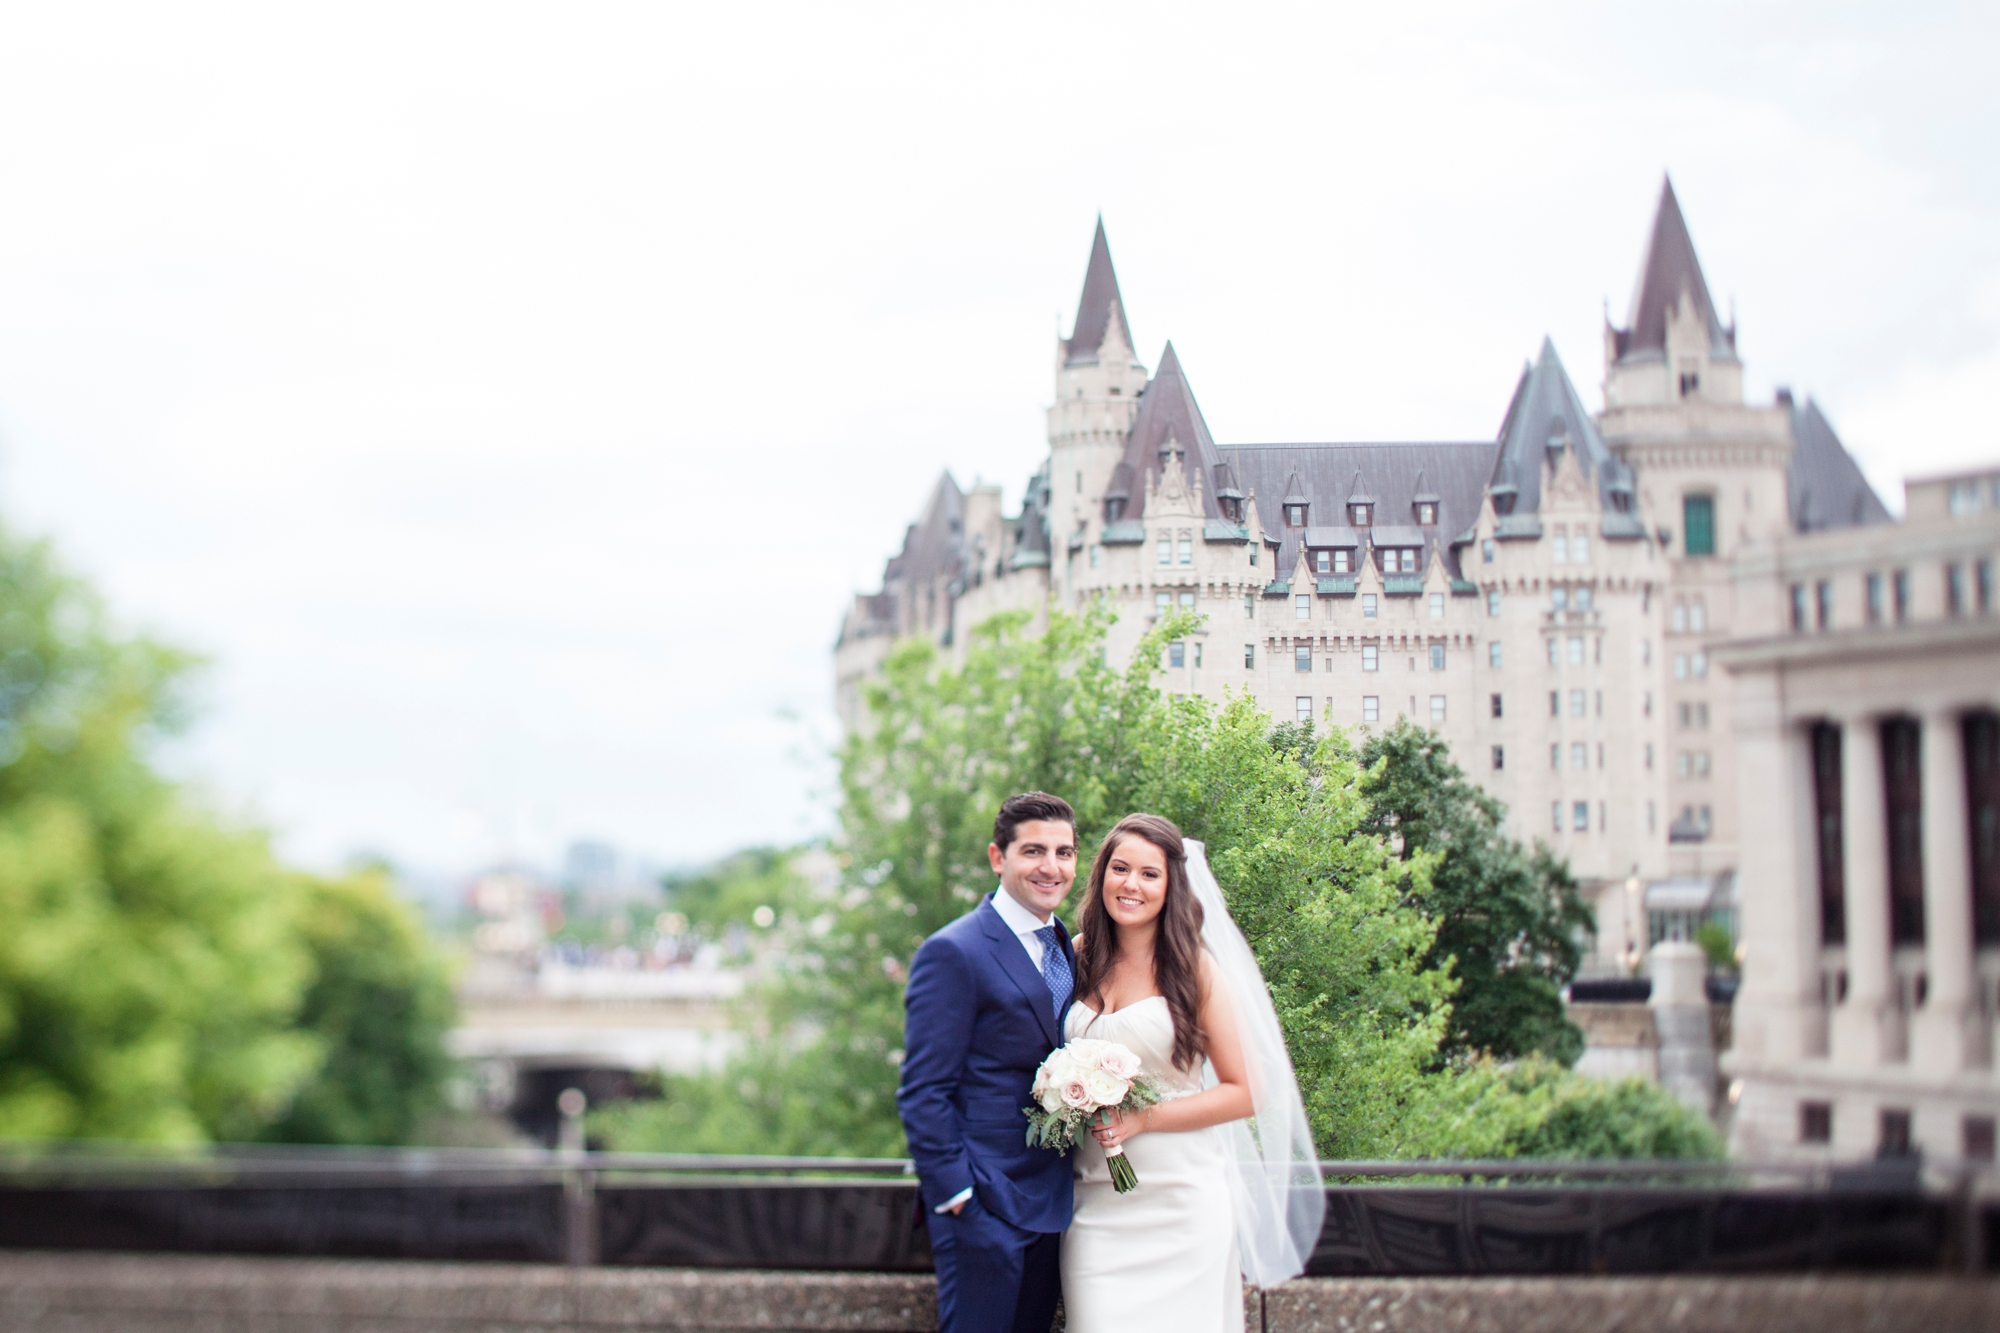 edmonton calgary alberta wedding photographer52.jpg